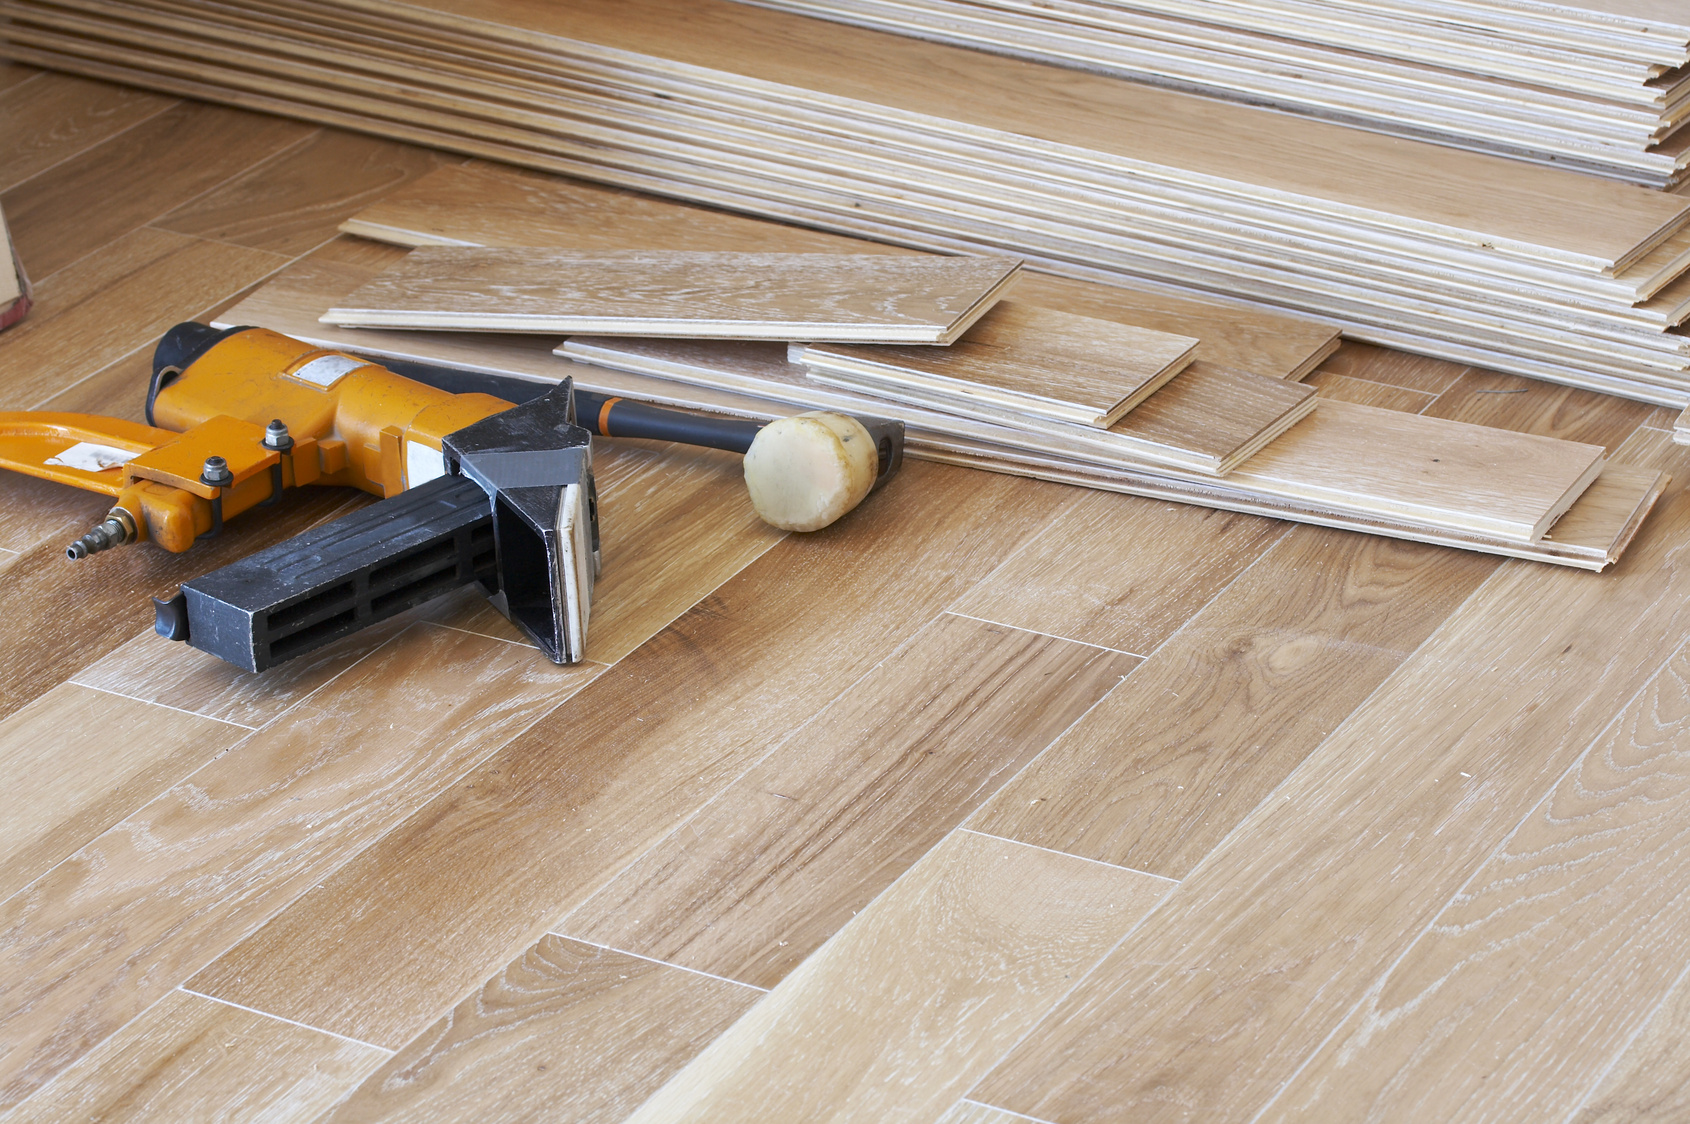 Flooring services in Oxford by Stout's Carpet & Flooring